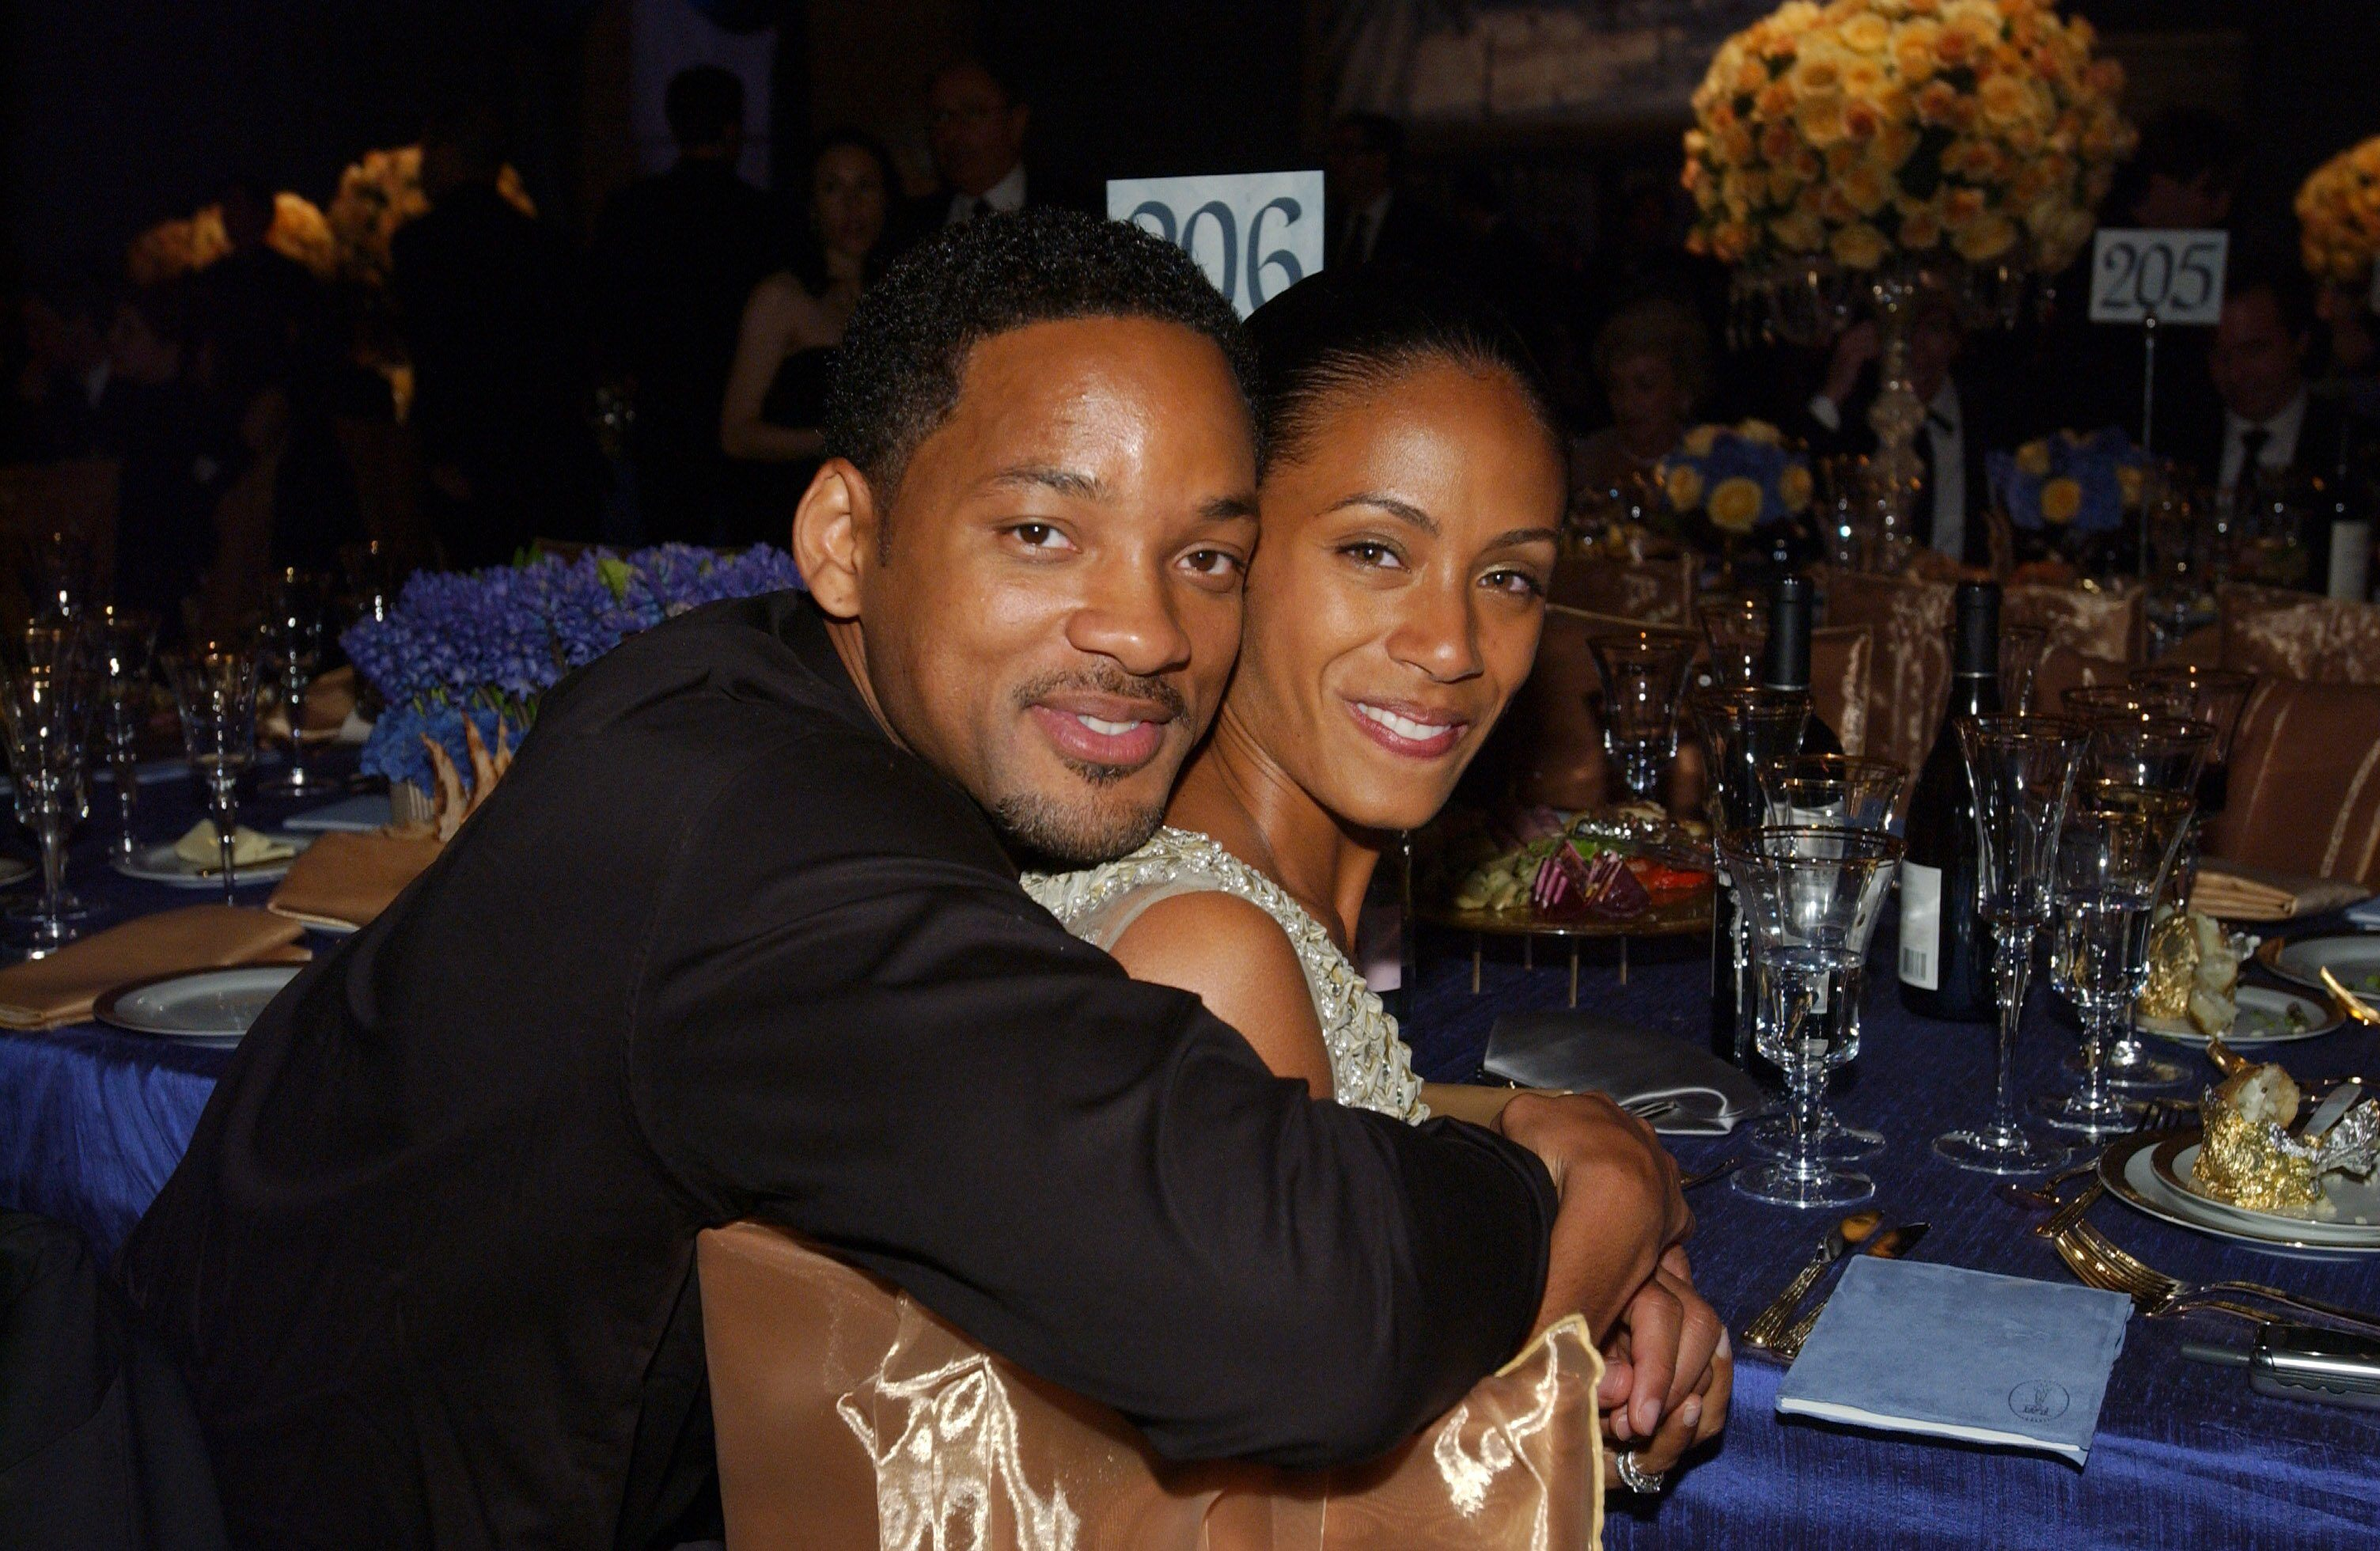 Academy Award presenters Will Smith and Jada Pinkett Smith attend the Governors Ball.